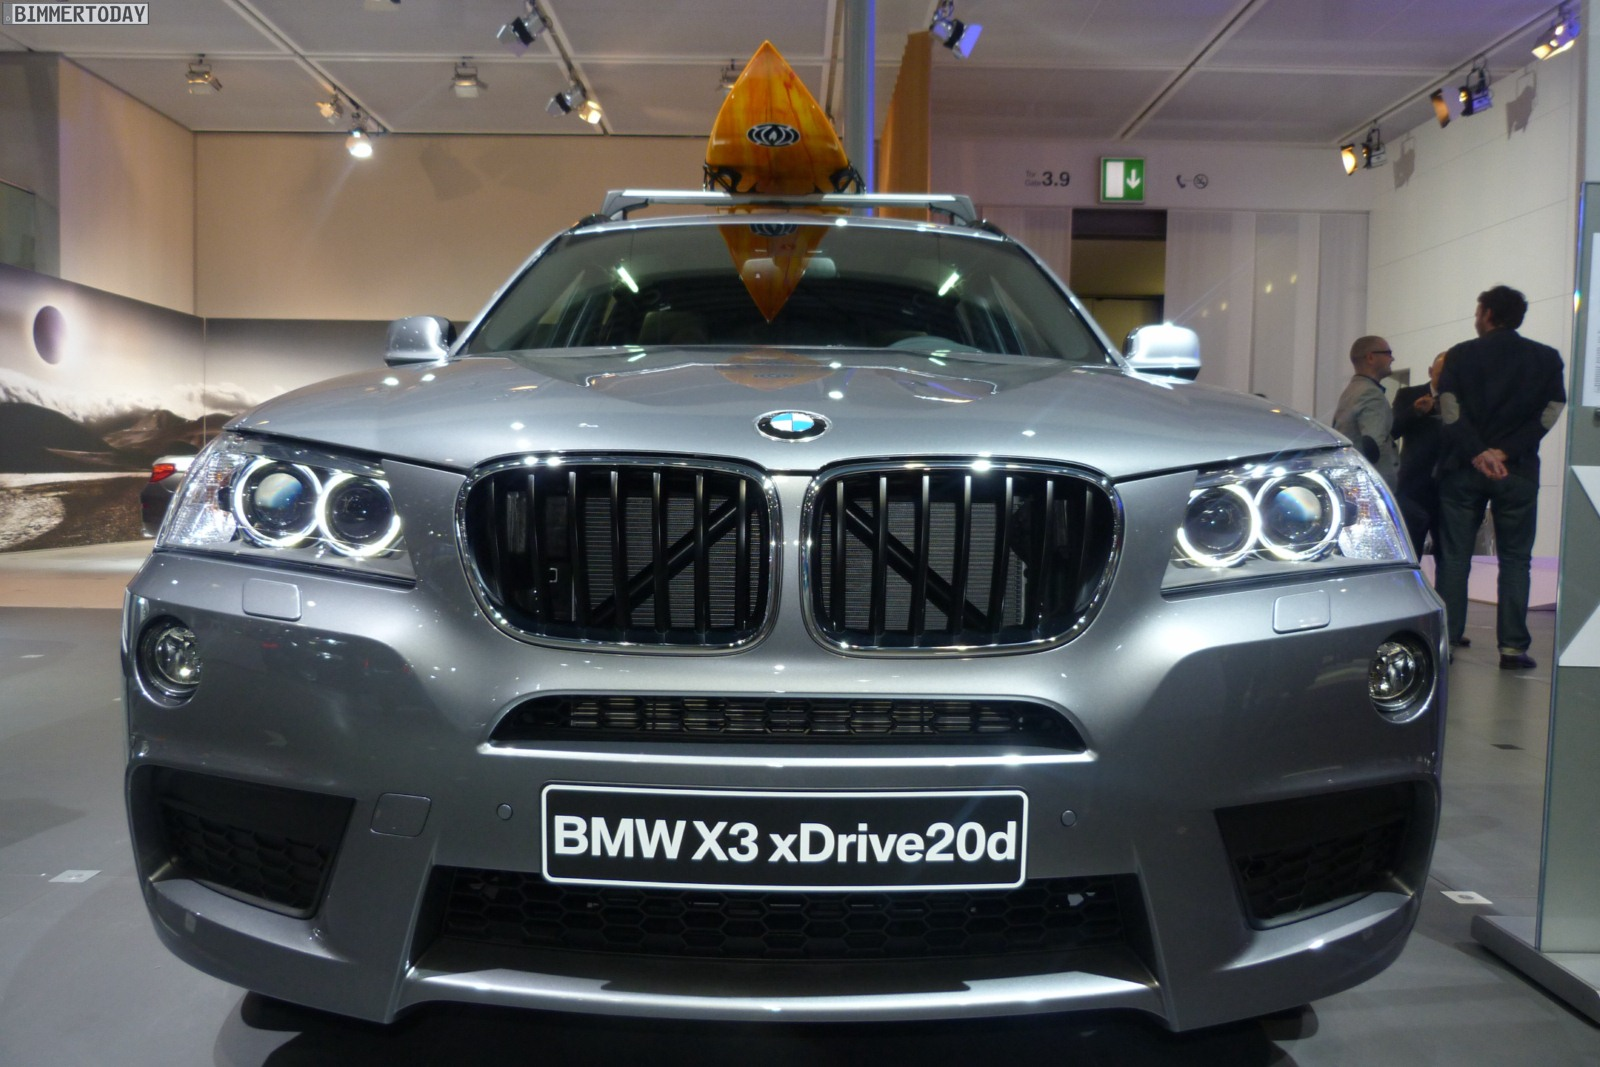 ami 2012 bmw x3 xdrive20d f25 mit m sportpaket in spacegrau. Black Bedroom Furniture Sets. Home Design Ideas